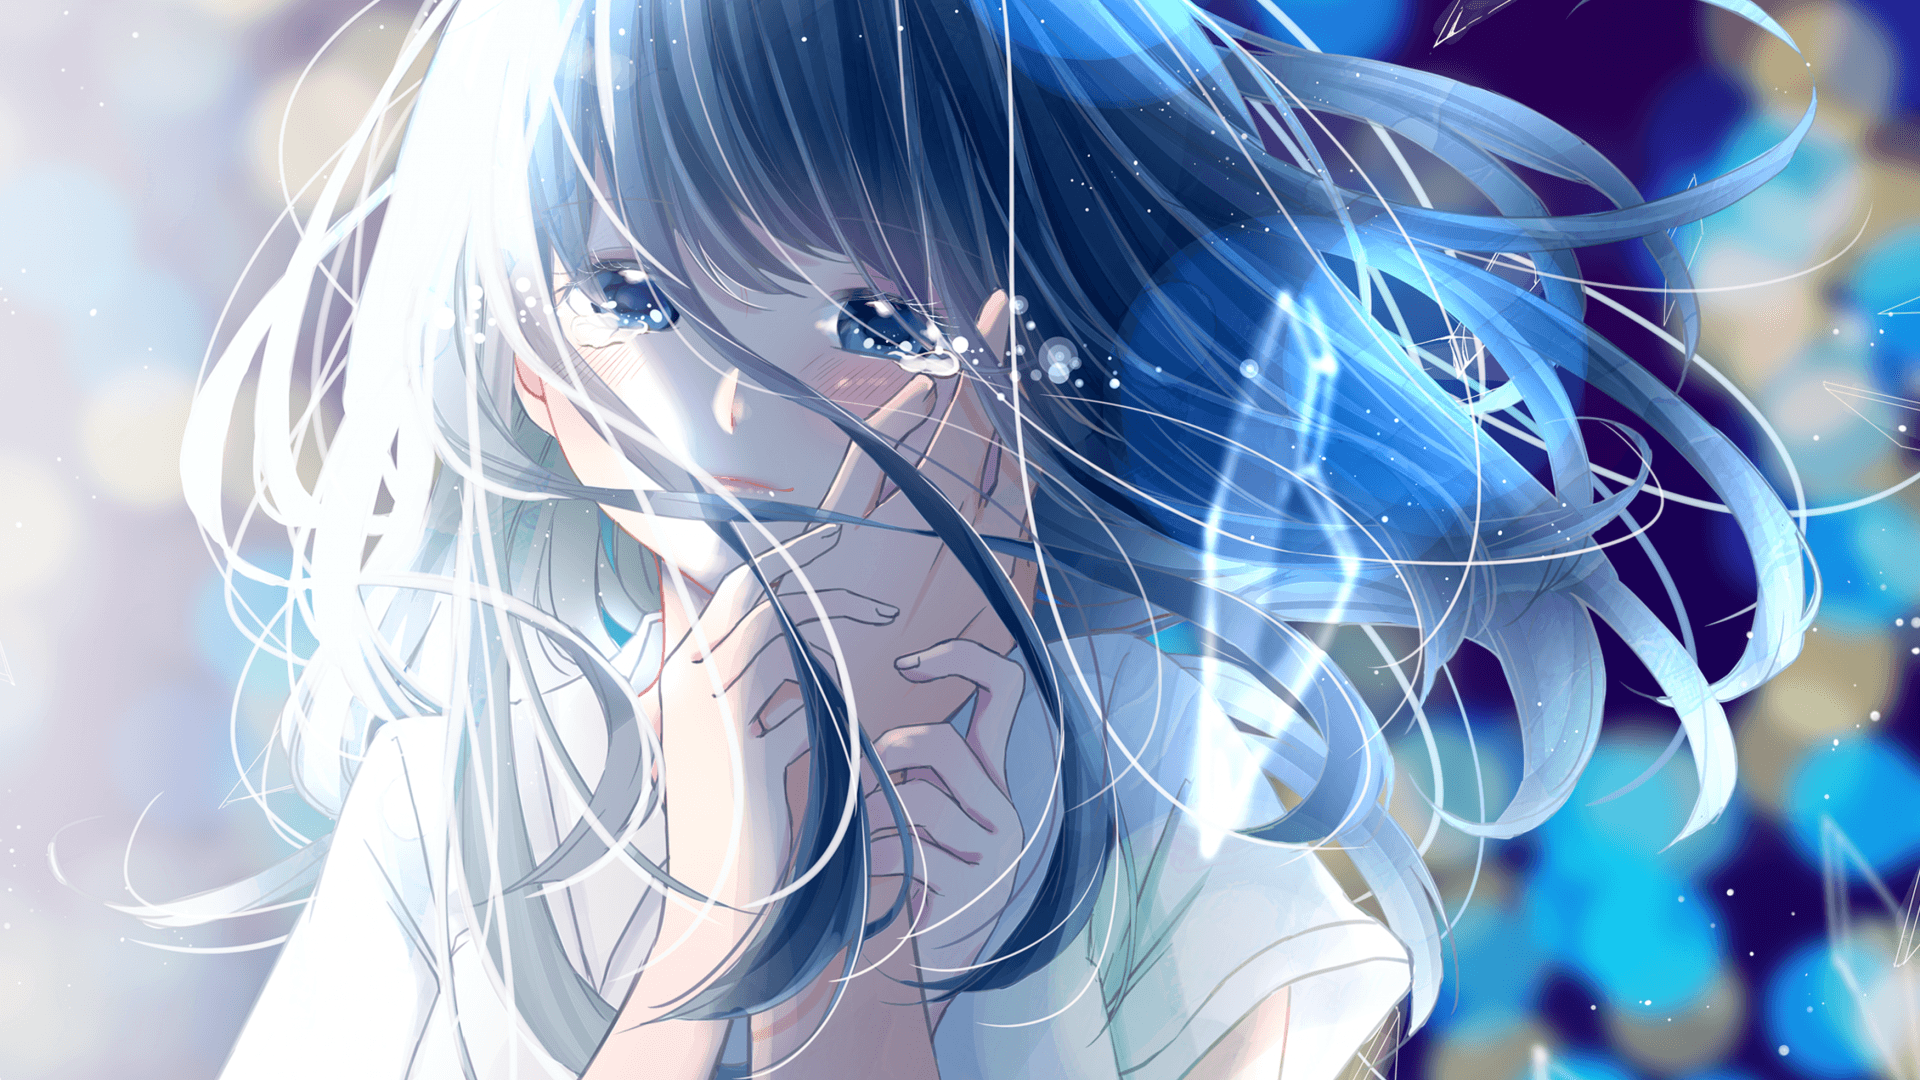 Cute Crying Anime Wallpapers - Wallpaper Cave